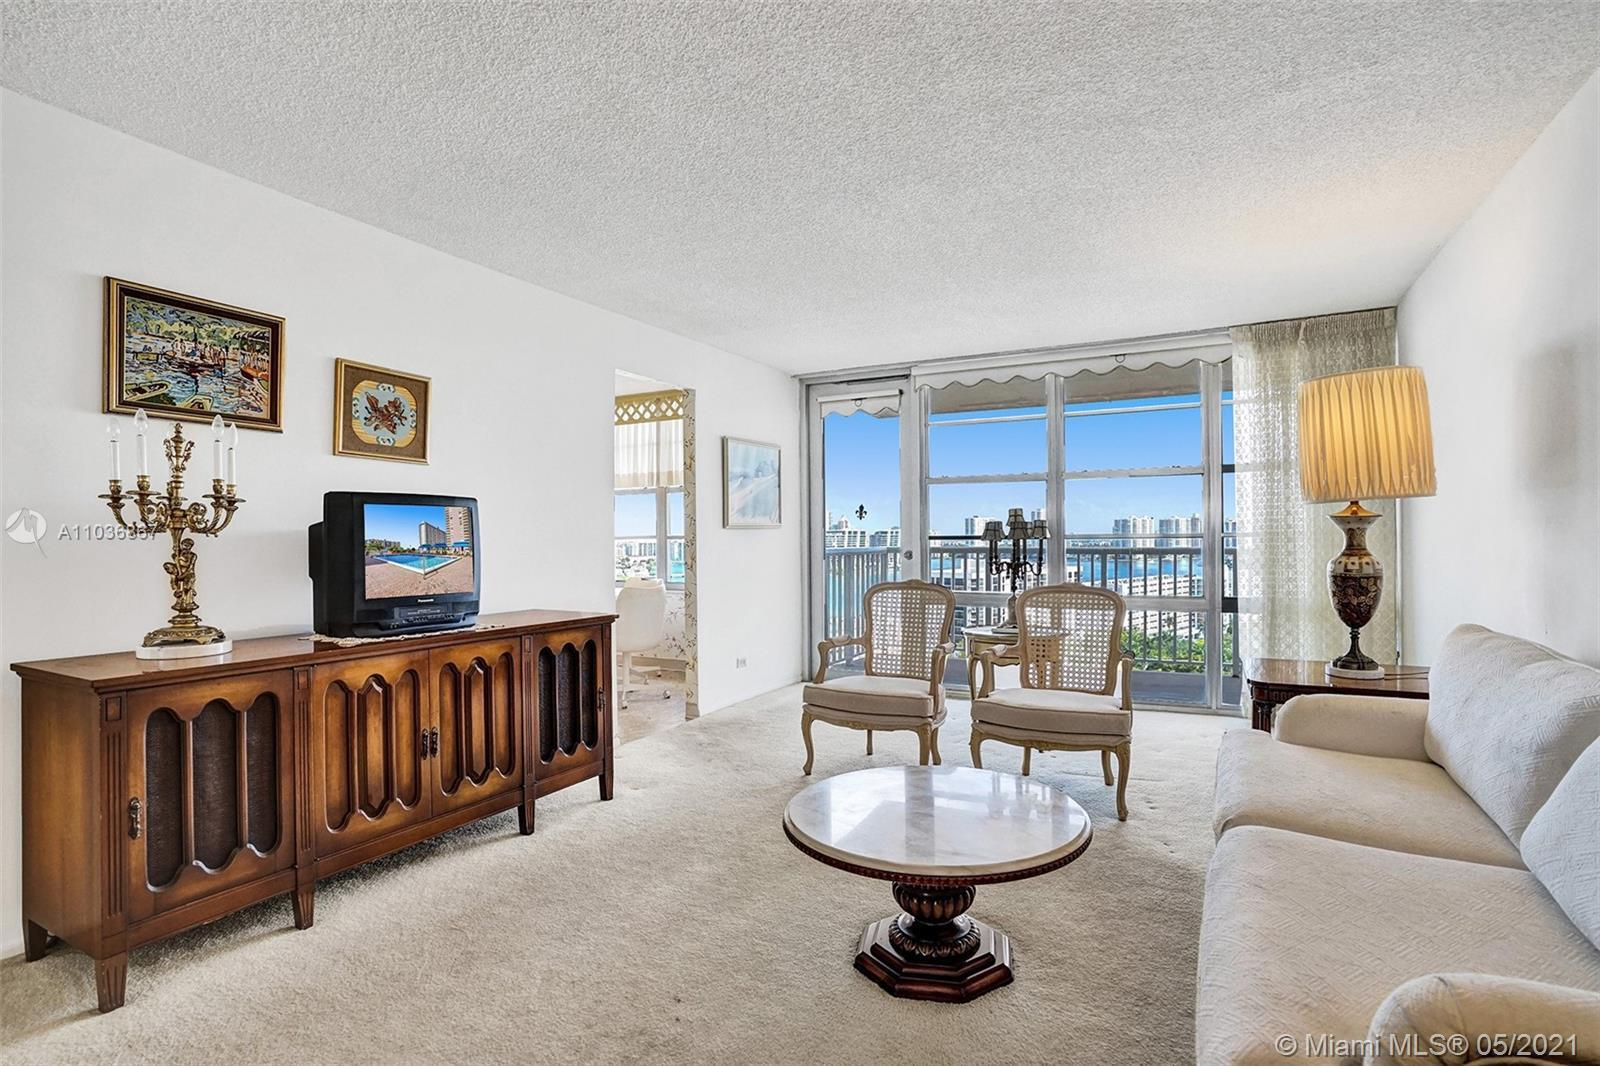 Upon entering unit 2002, it exudes a sense of Brightness and Warmth, with one of the Best Views of T